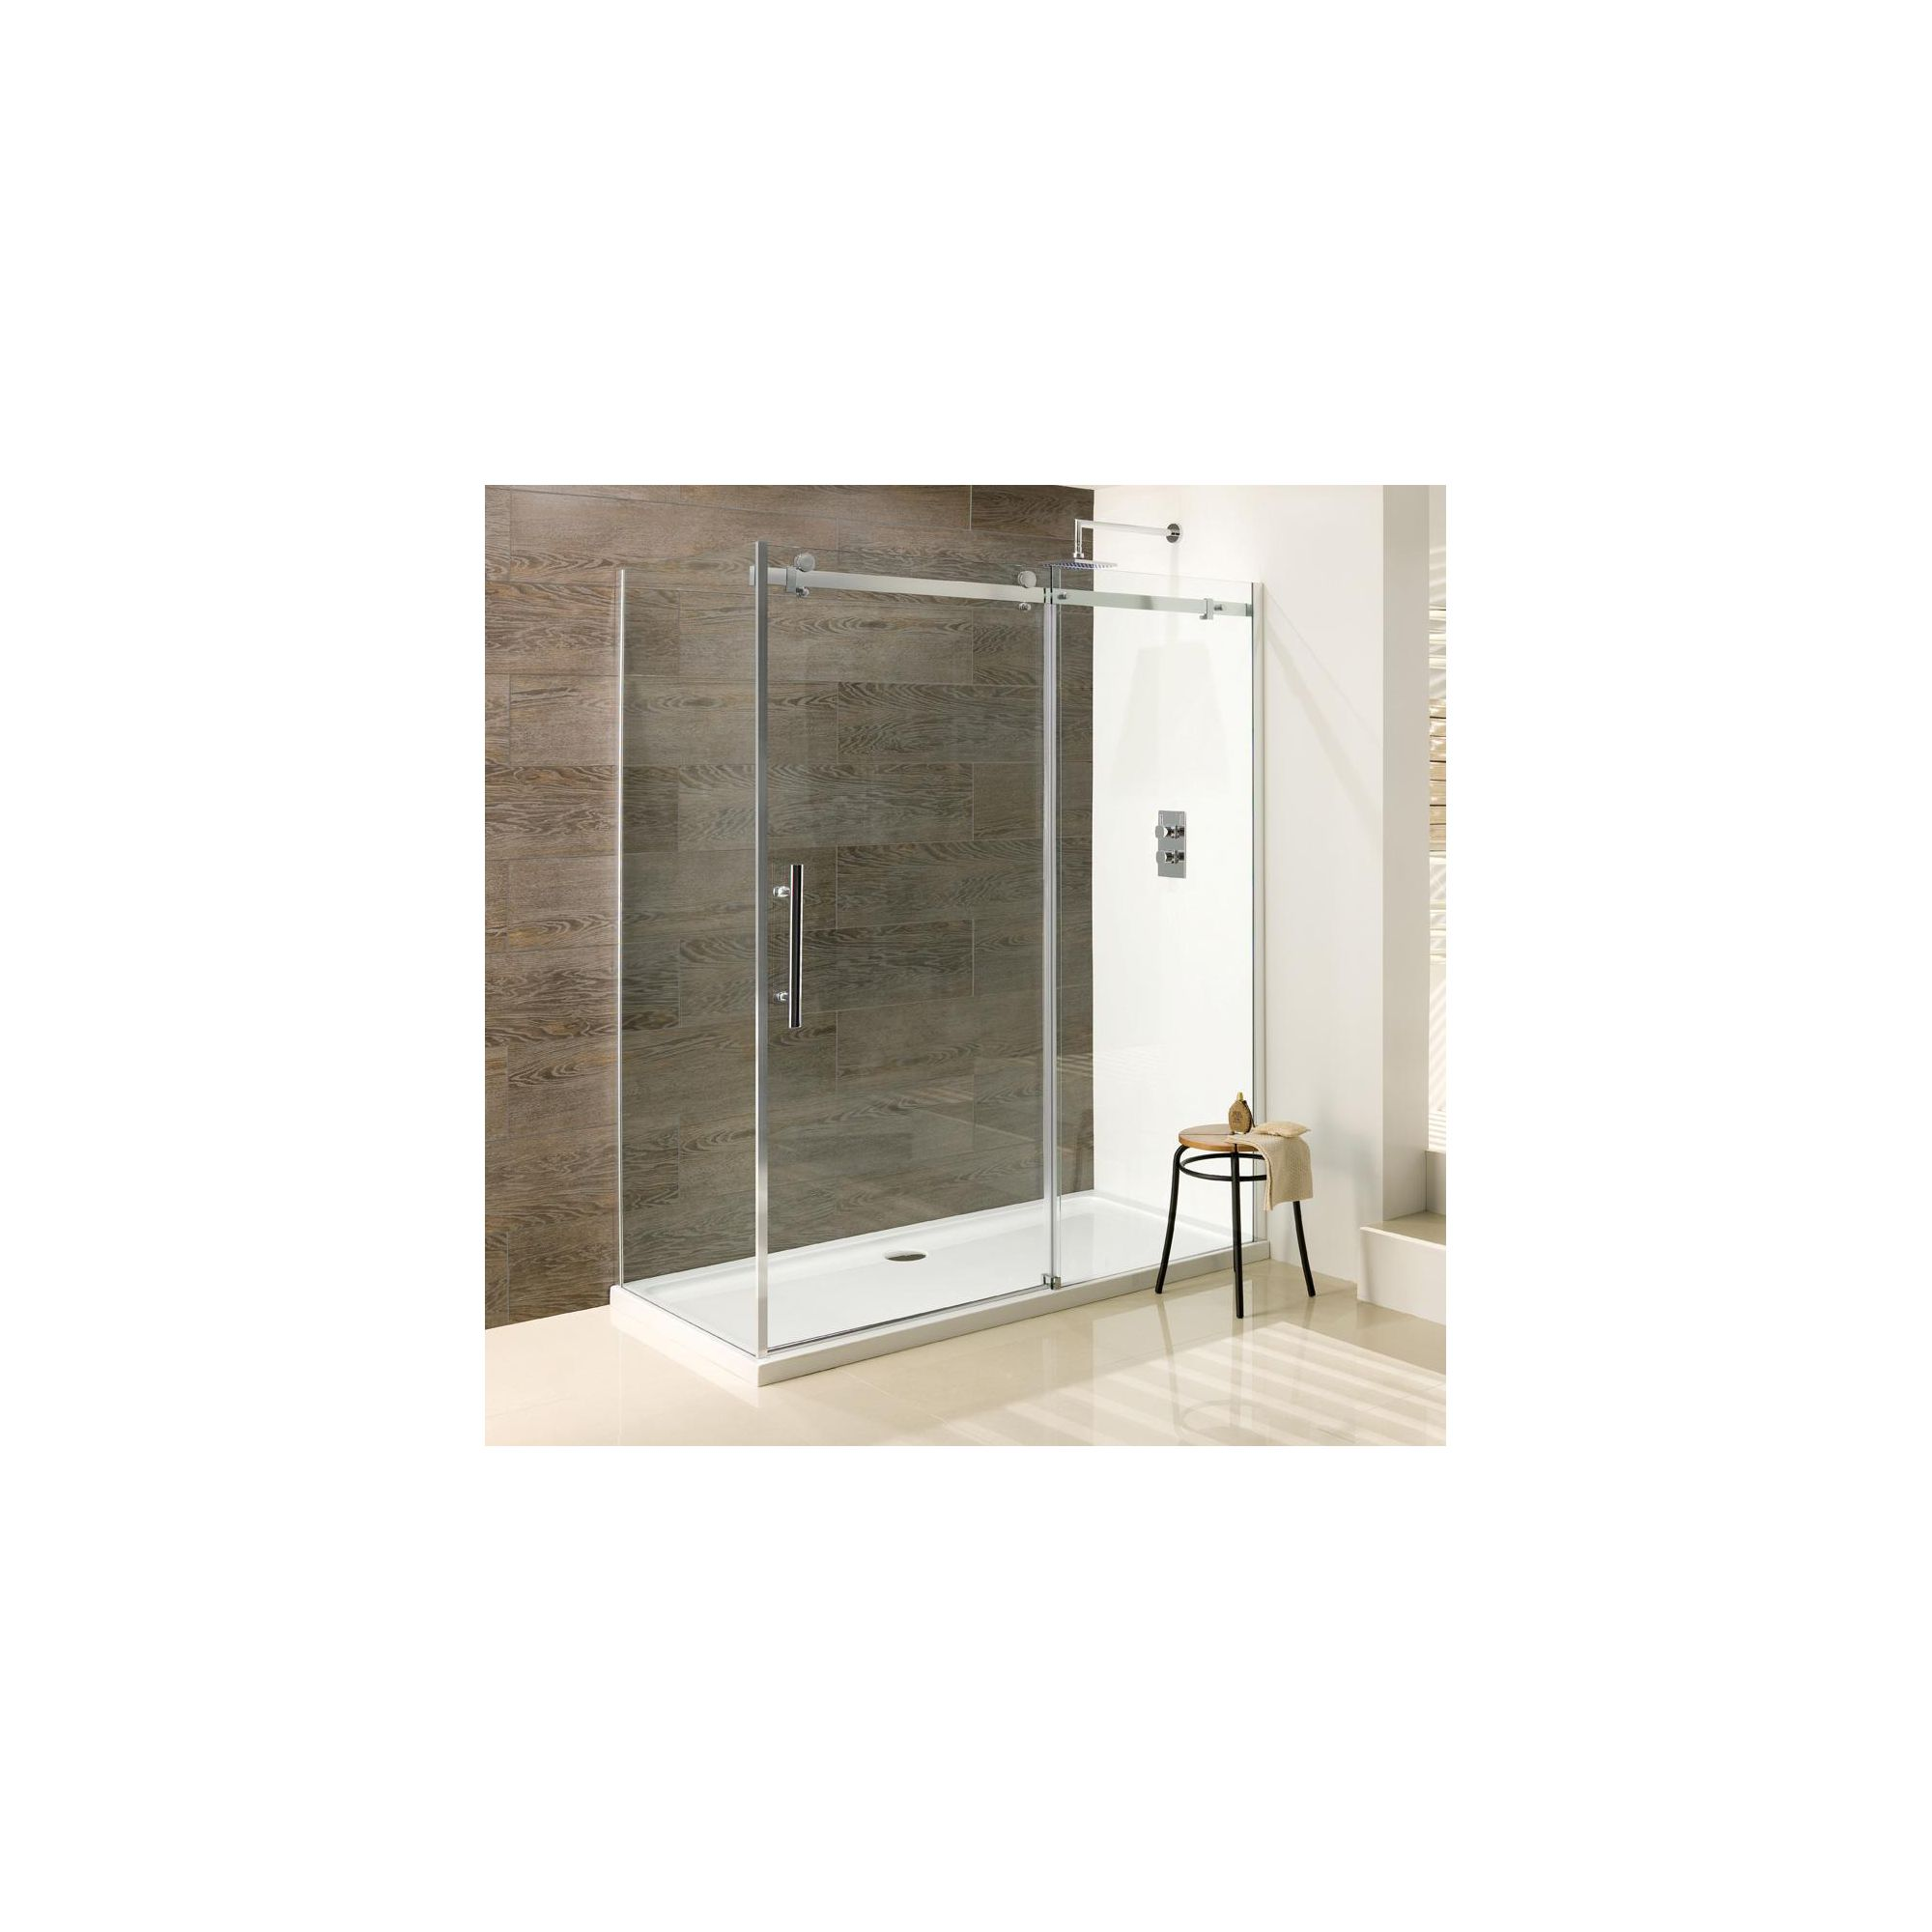 Duchy Deluxe Silver Sliding Door Shower Enclosure with Side Panel 1600mm x 700mm (Complete with Tray), 10mm Glass at Tesco Direct